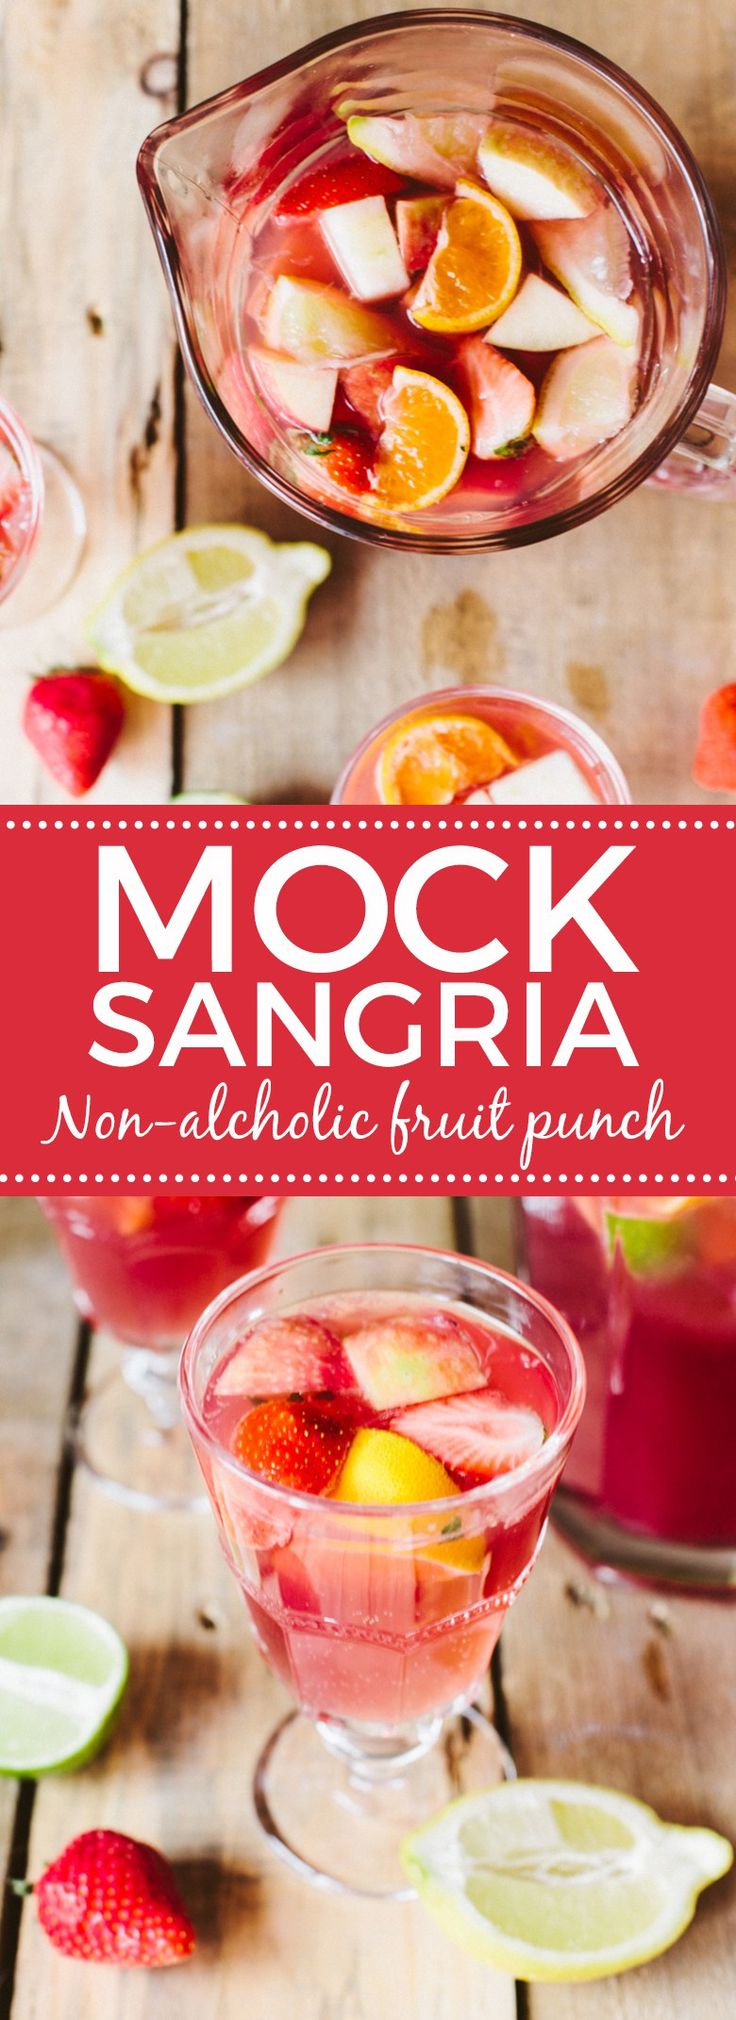 Mock Sangria! A non-alcoholic fruit punch